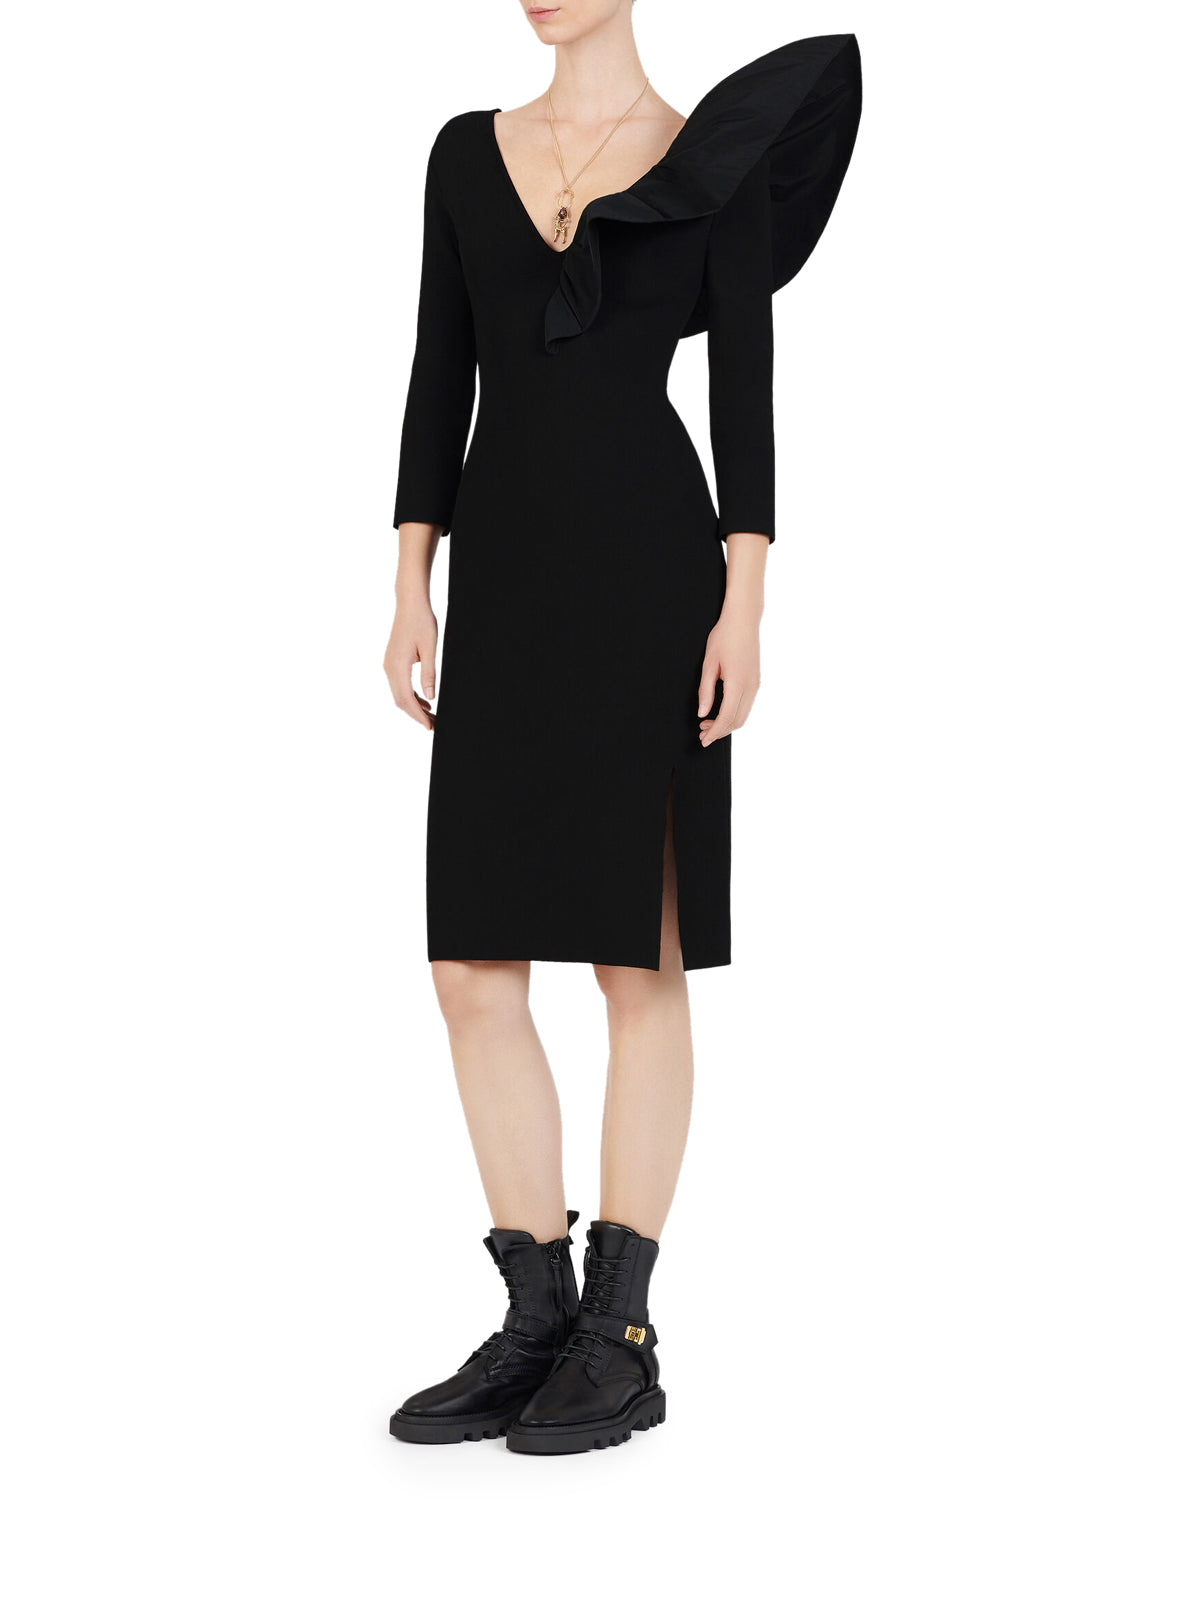 ASYMMETRICAL AJUSTED DRESS WITH FRILL